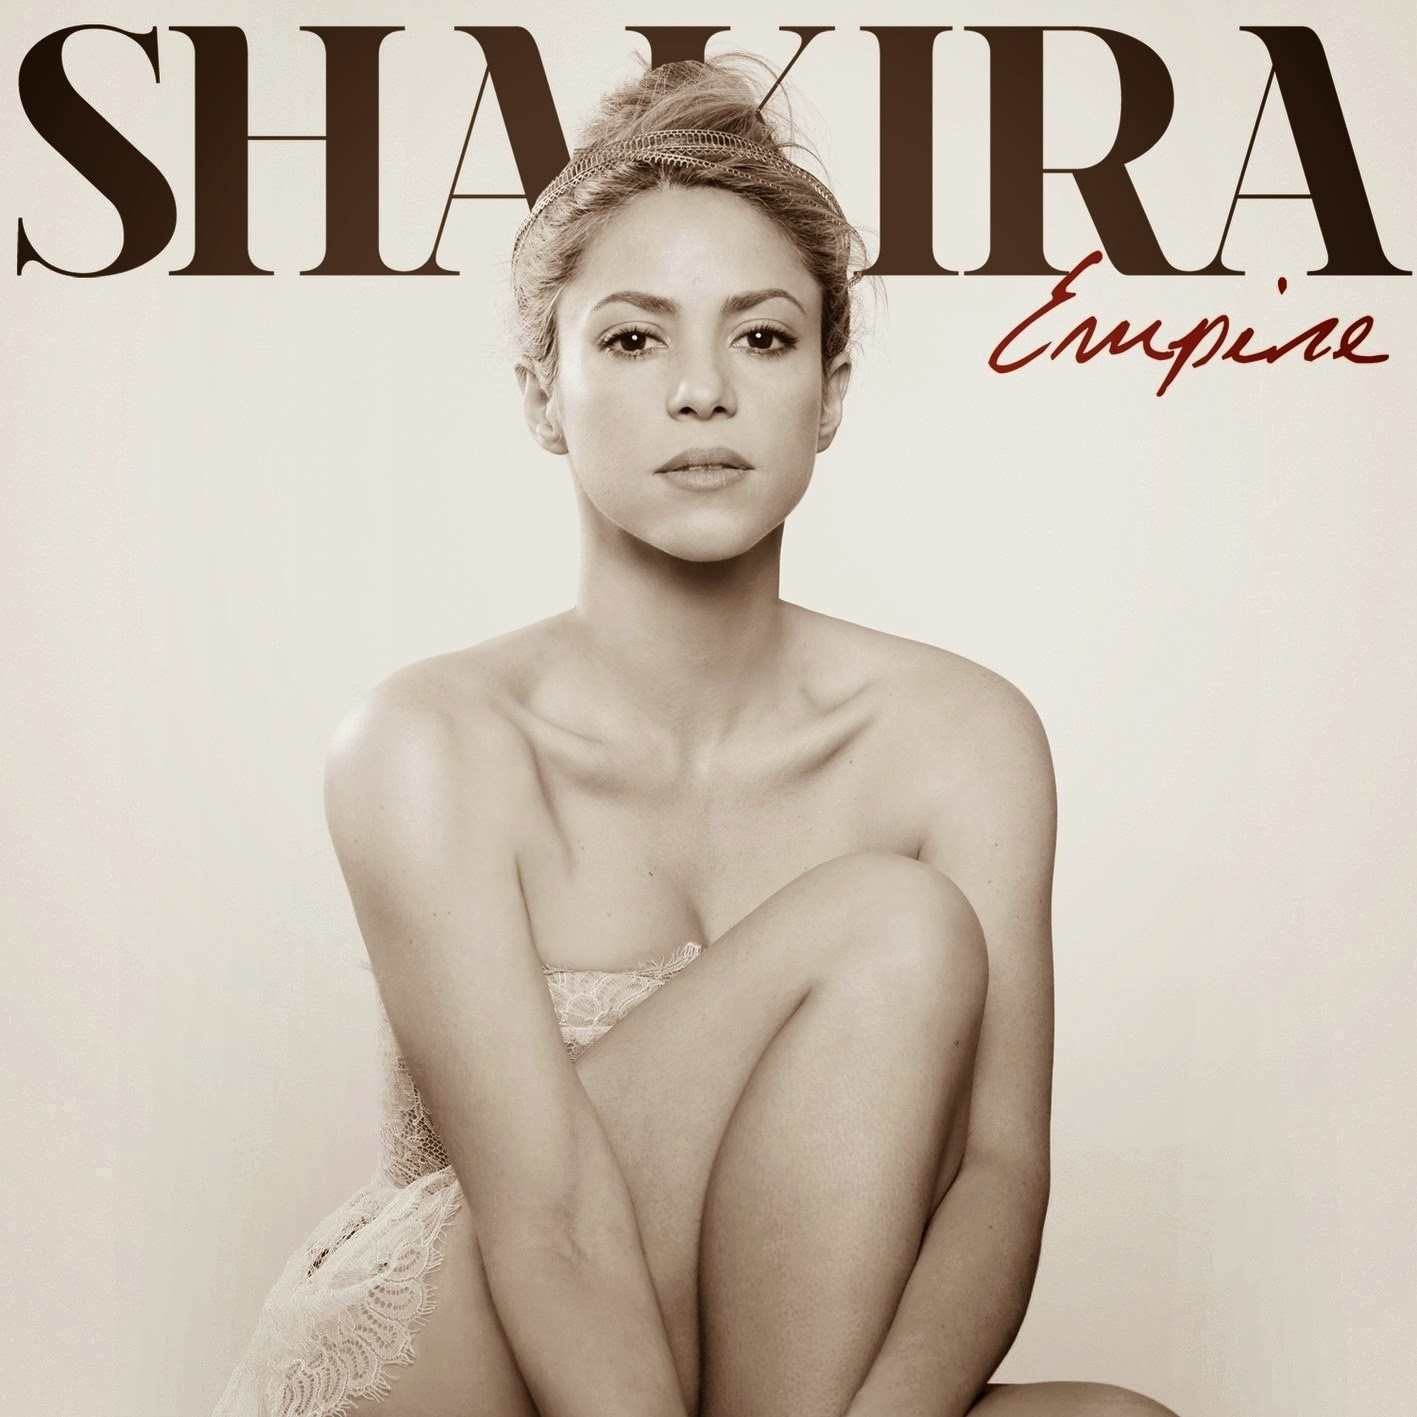 Shakira posa para capa do single